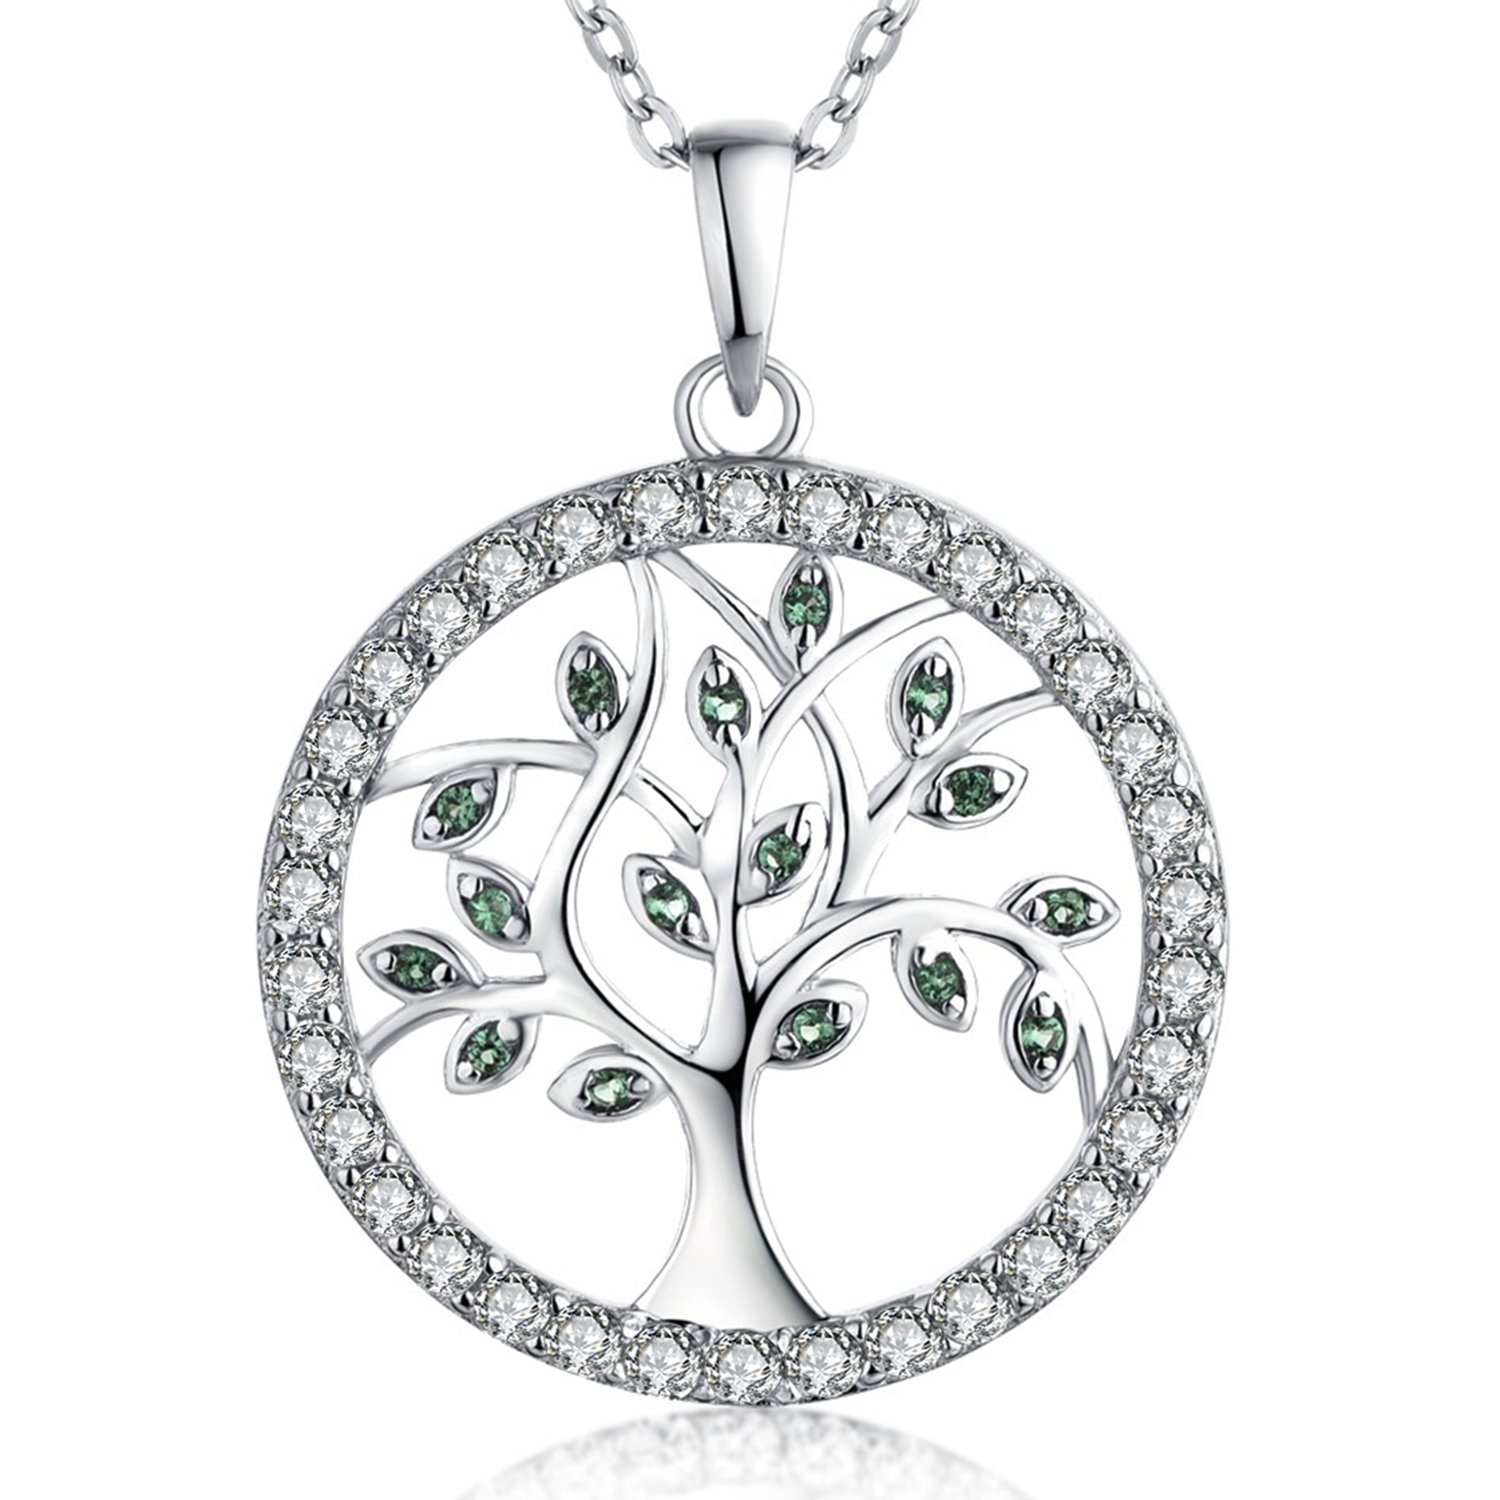 YL Life Tree Pendant for Women Sterling Silver Emerald Necklace Gemstone Rose Jewelry (I:style 3-halo green)